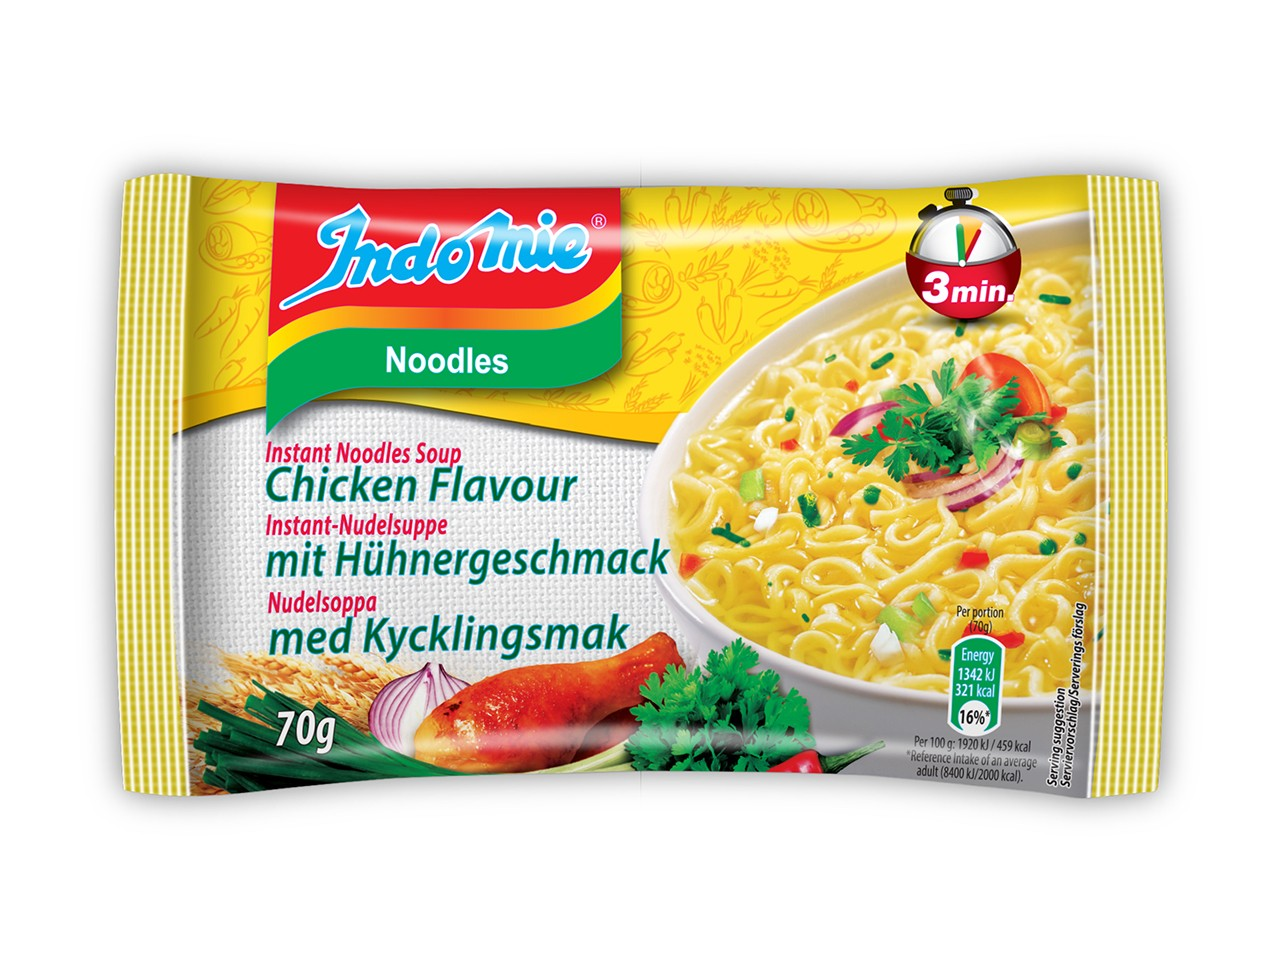 Indomie instant noodles soup Chicken flavour